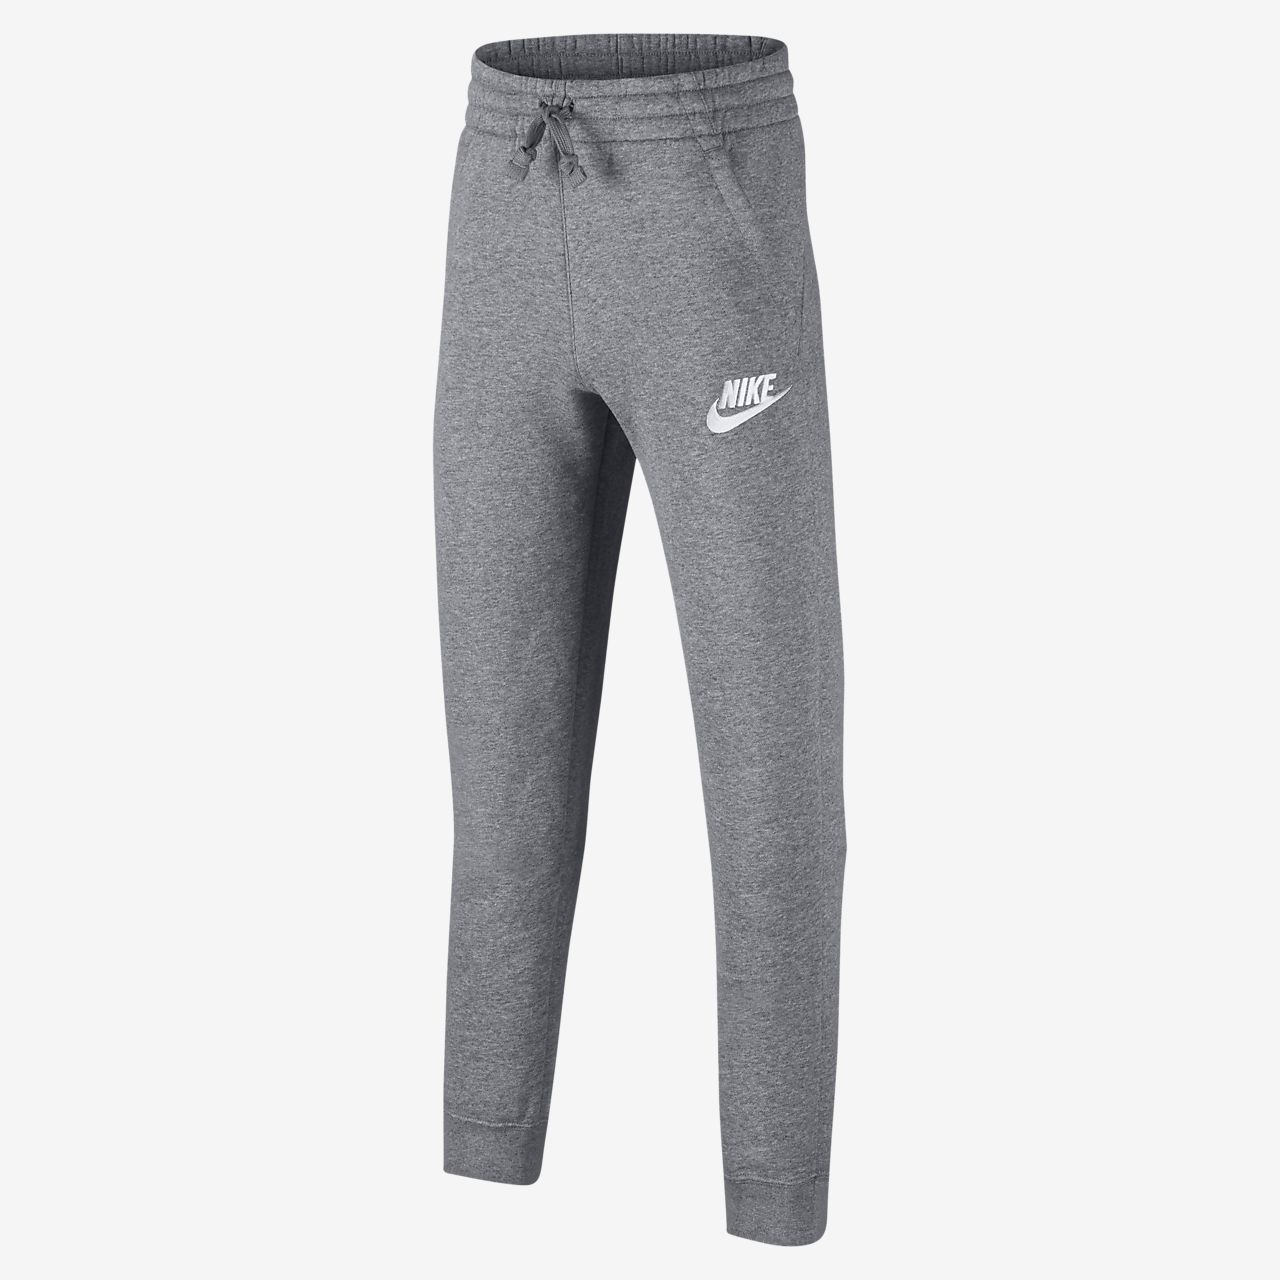 Nike Sportswear Older Kids' (Boys') Fleece Joggers